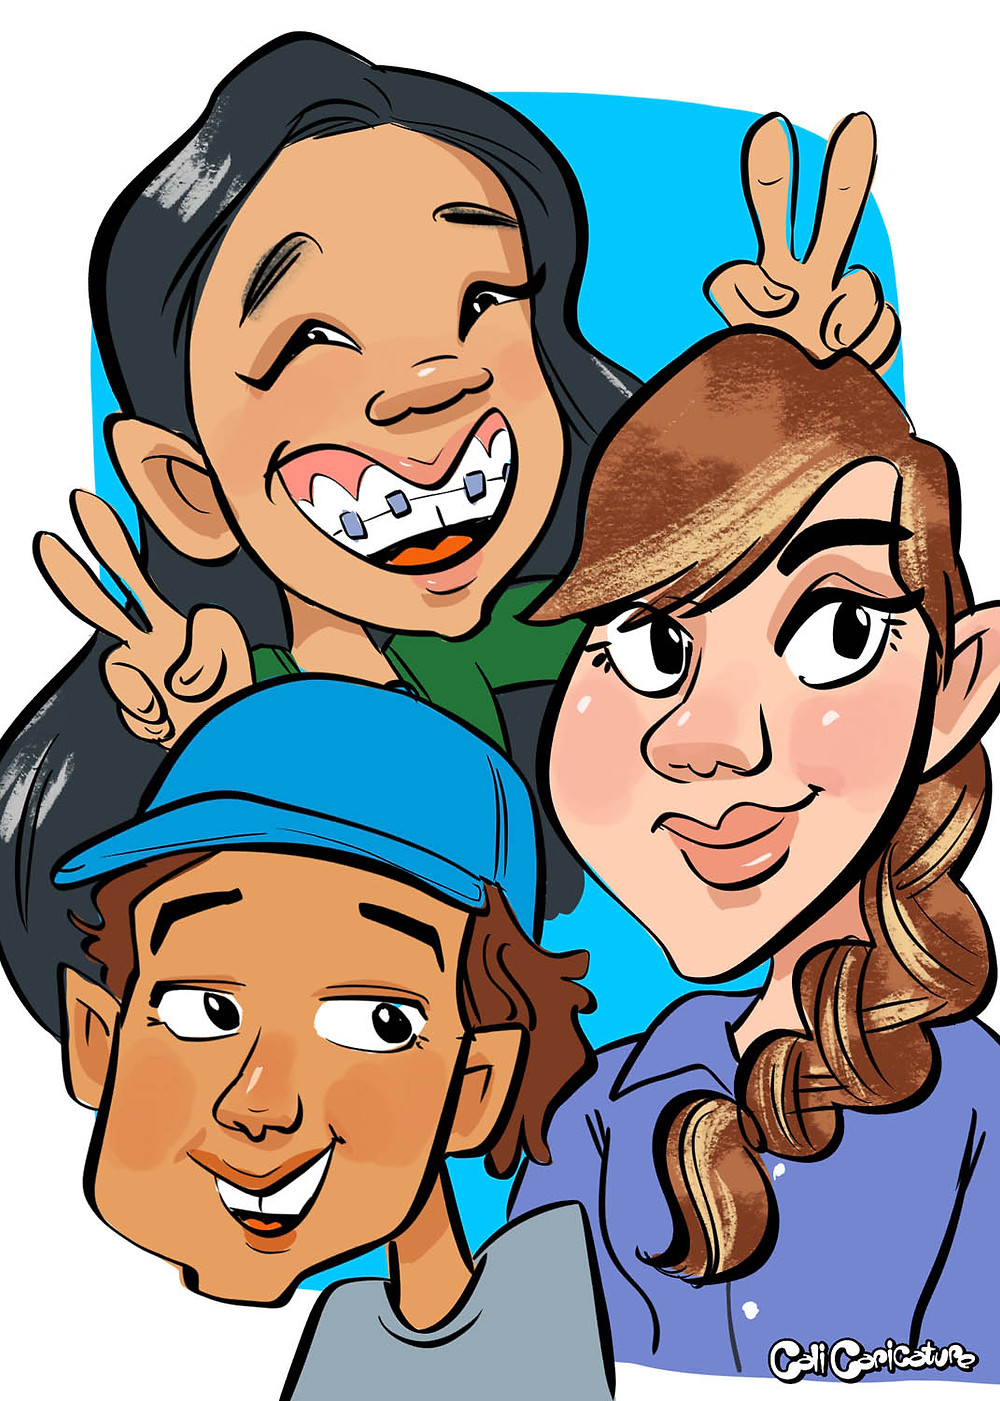 siblings family caricature portrait faces cartoon drawing families art fun cute caricatures cali group photo pic image